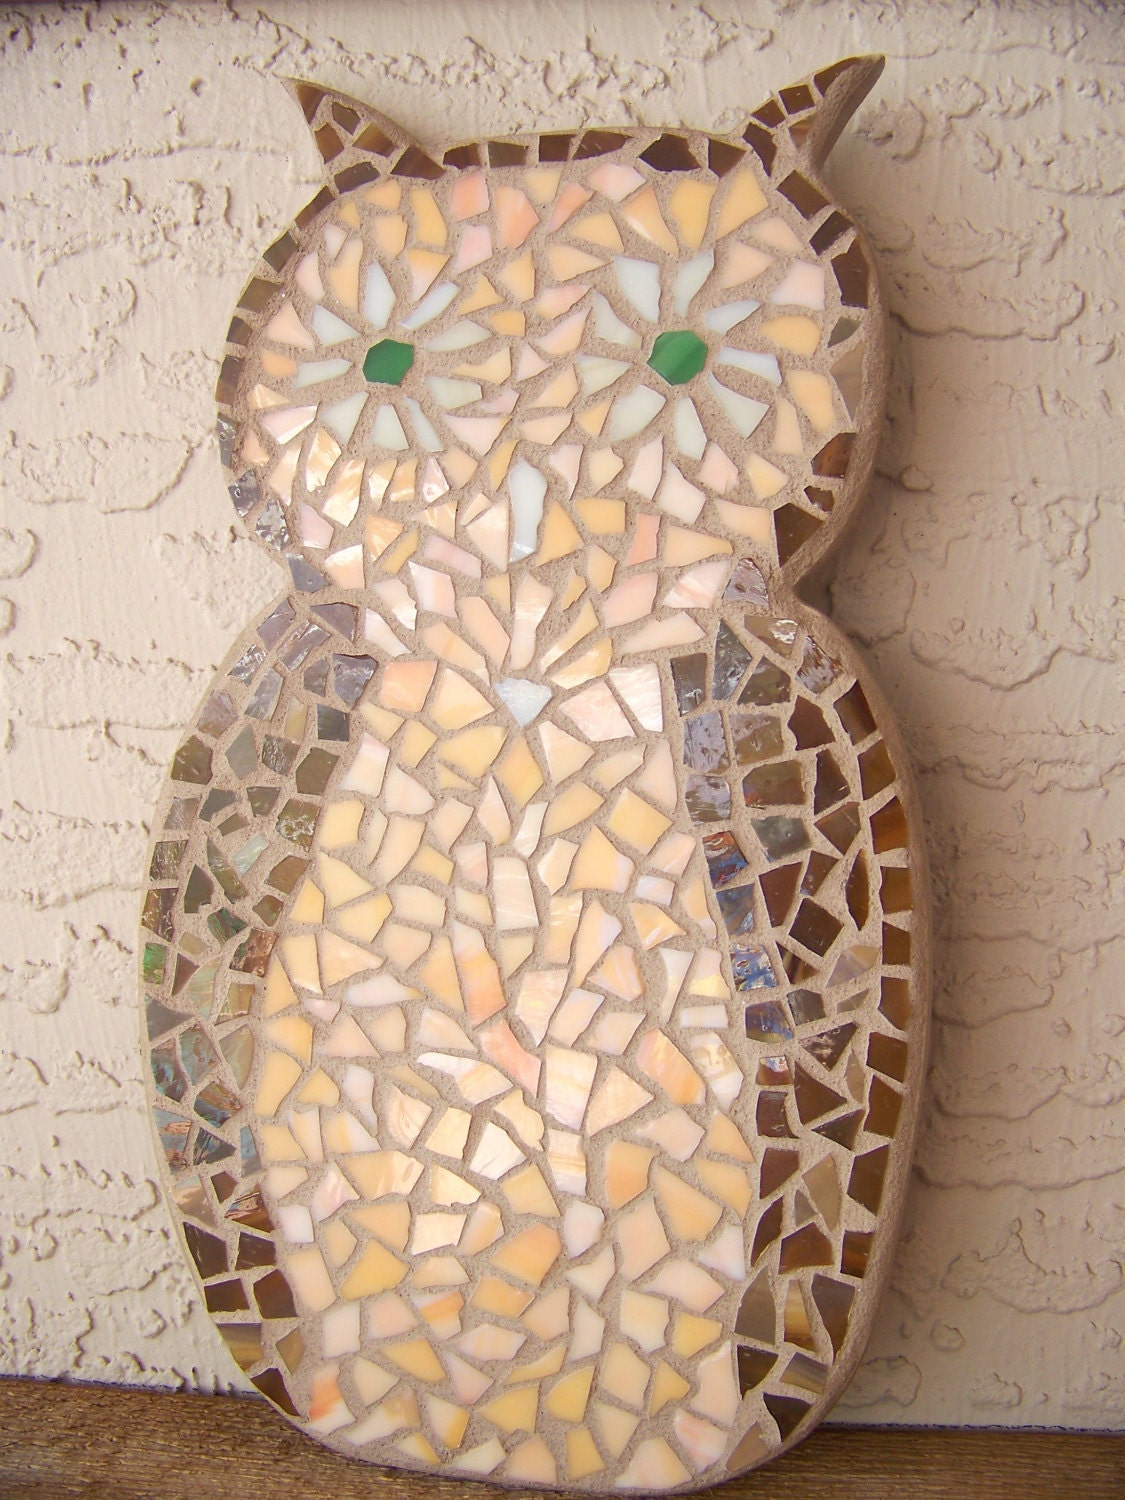 stained glass mosaic owl wall art wall hanging by bluewaveglass. Black Bedroom Furniture Sets. Home Design Ideas